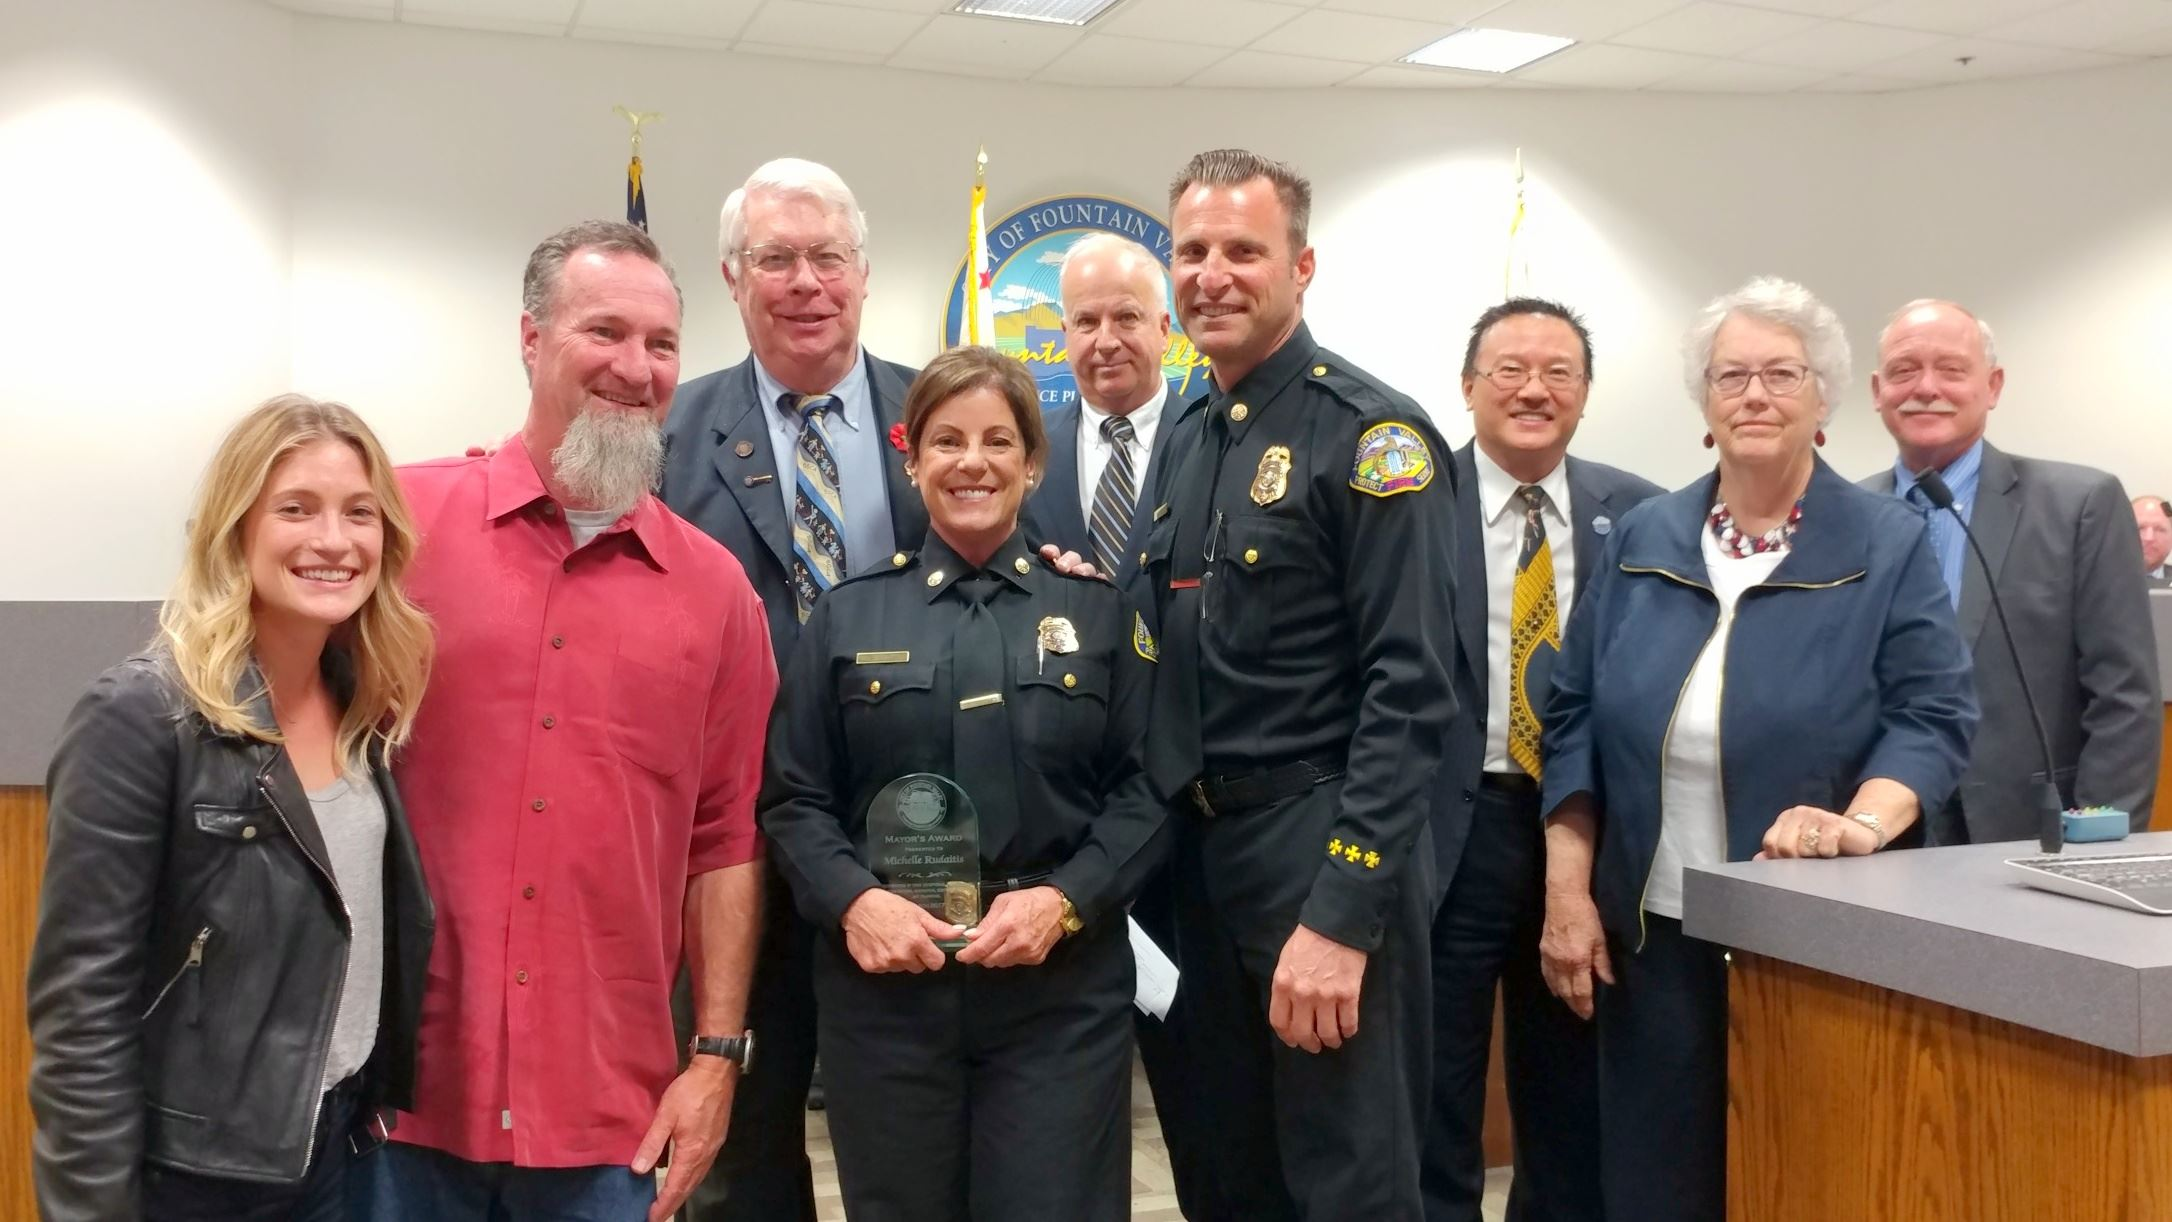 The Mayor's Award was created to recognize employees who have made exceptional contributions to the organization.